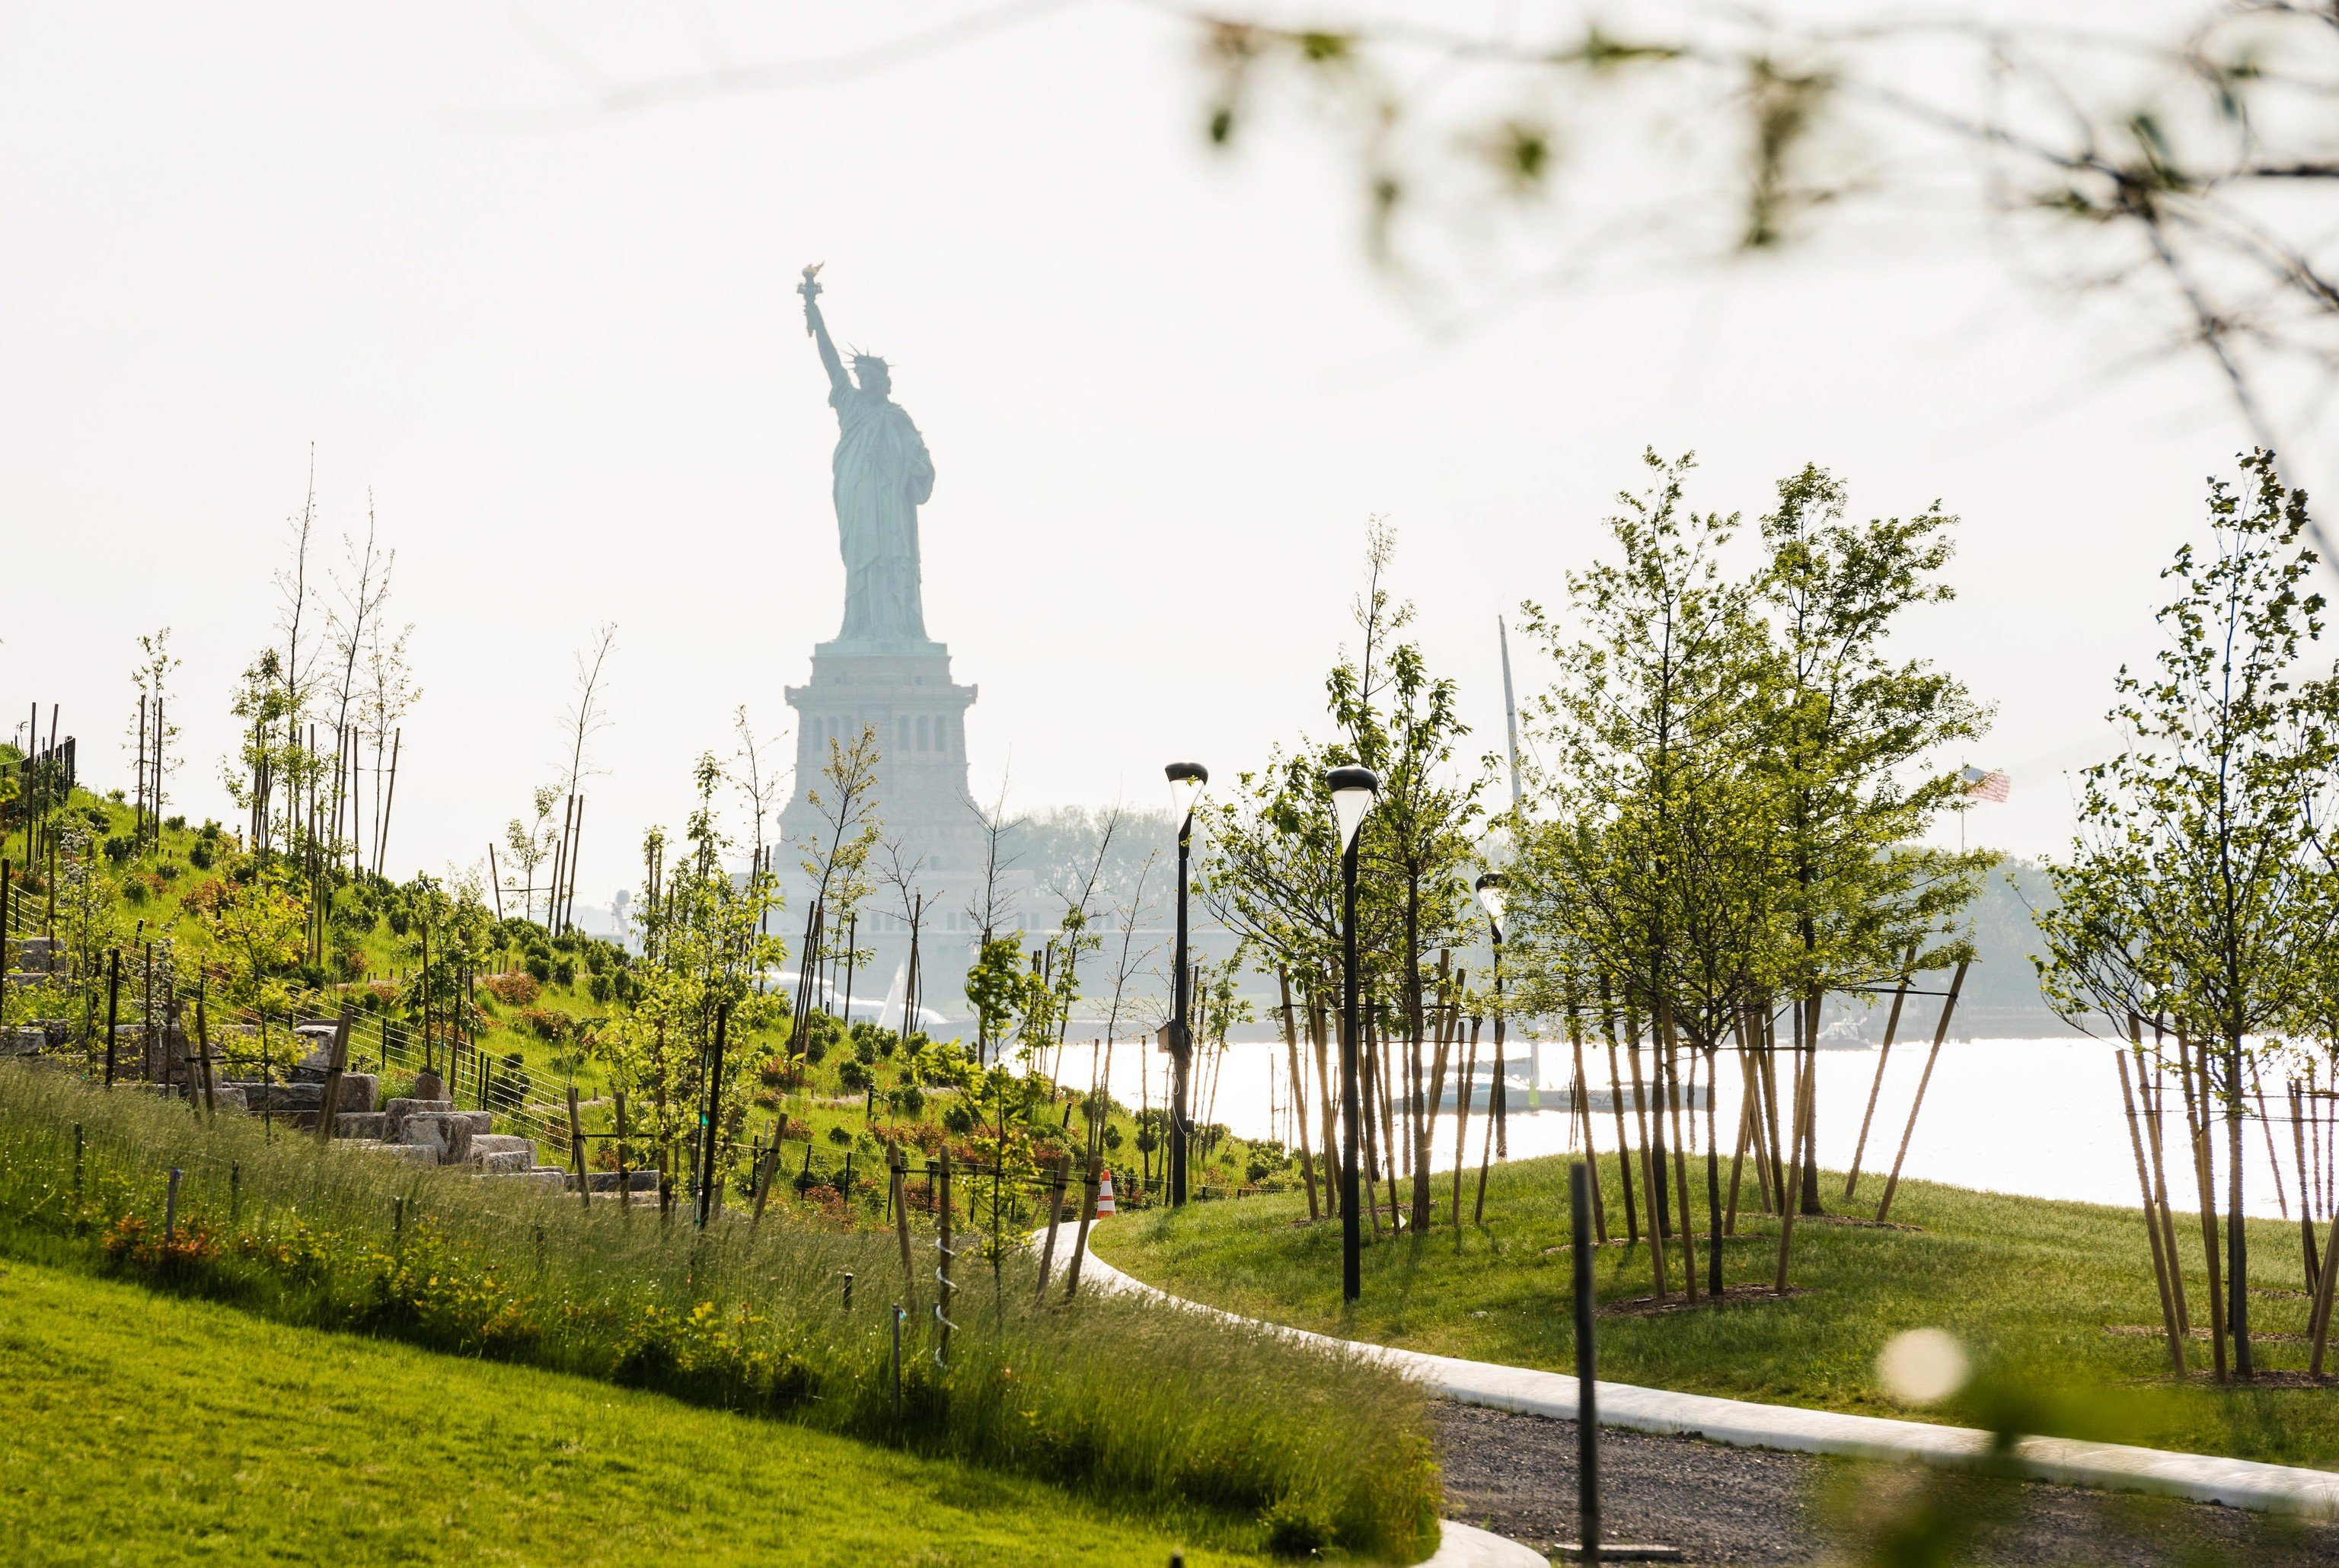 Glamping New York tree grass sky outdoor structure monument landscape recreation